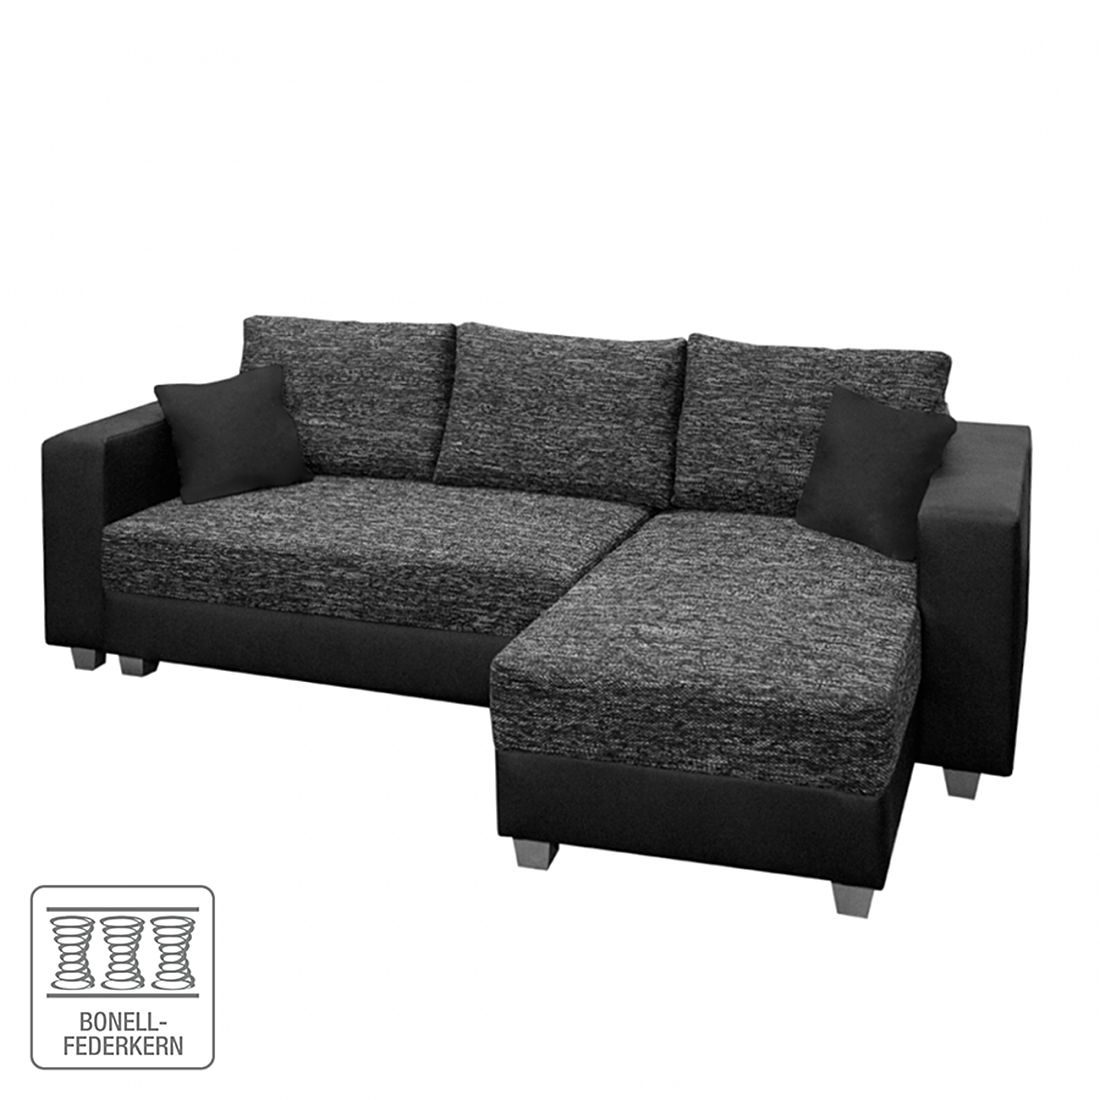 schlafsofa sleepster strukturstoff grau kunstleder taupe mooved g nstig online kaufen. Black Bedroom Furniture Sets. Home Design Ideas